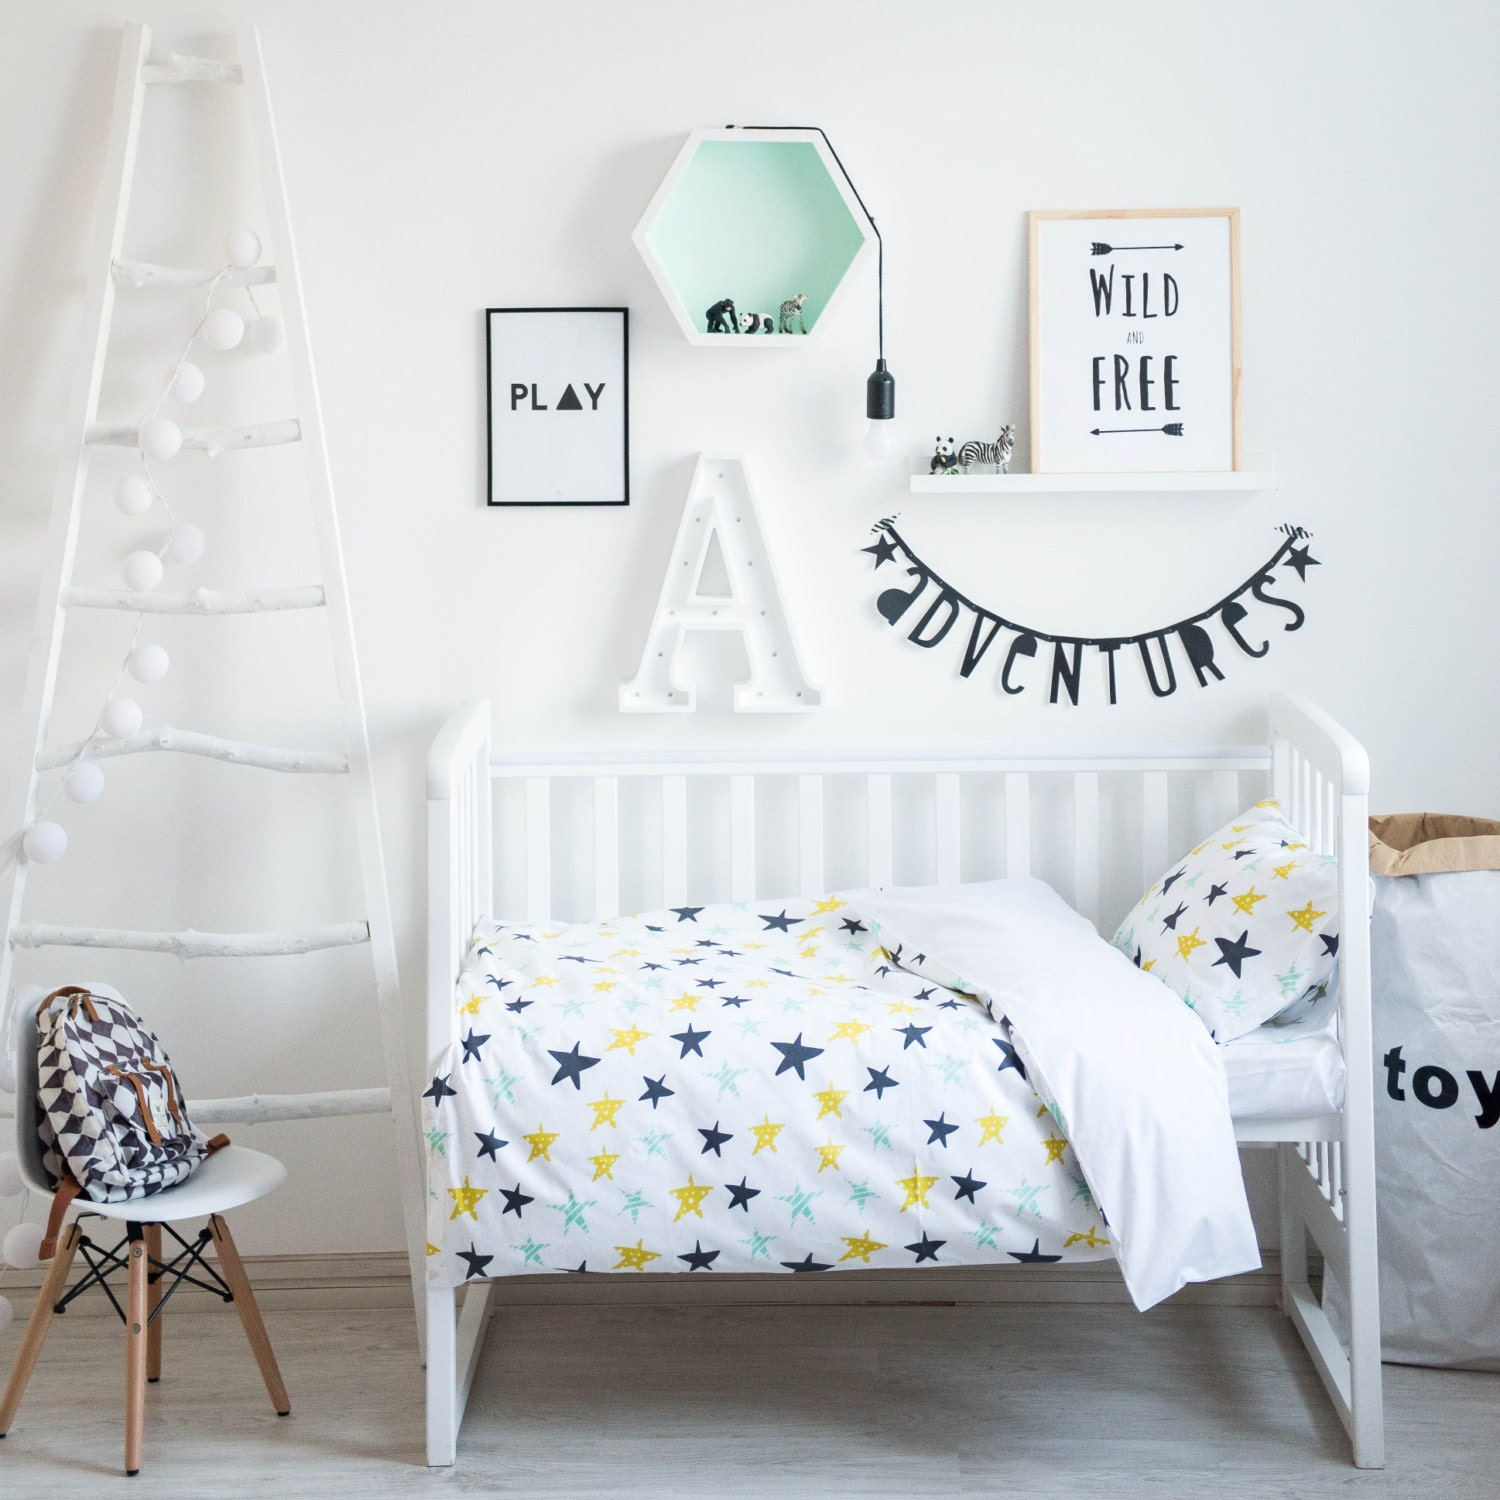 Crib Bedding Sets With Stars Creative Ideas of Baby Cribs